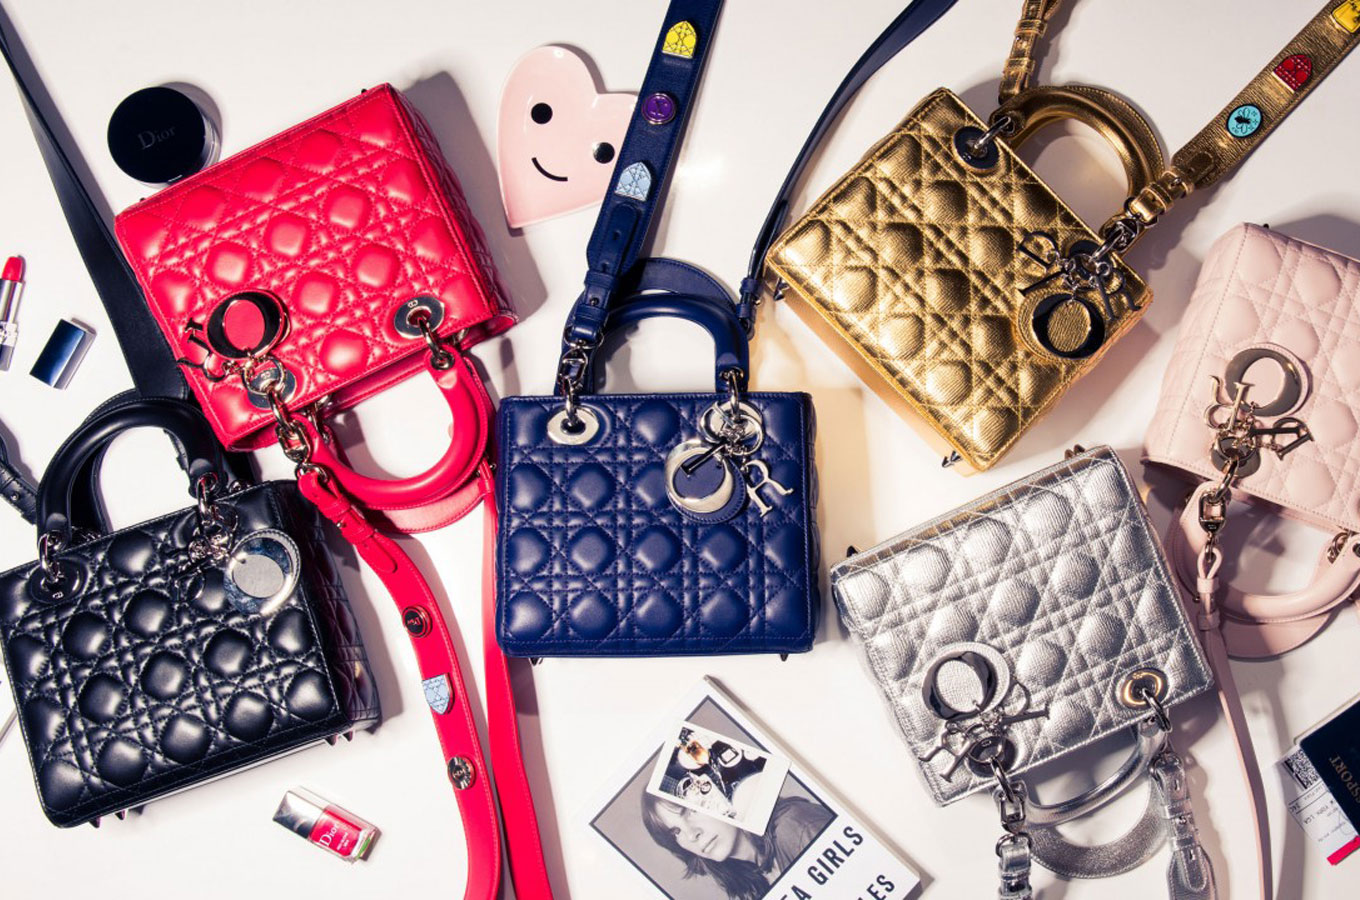 The Iconic Lady Dior Bag To Be Reimagined By Women Artists